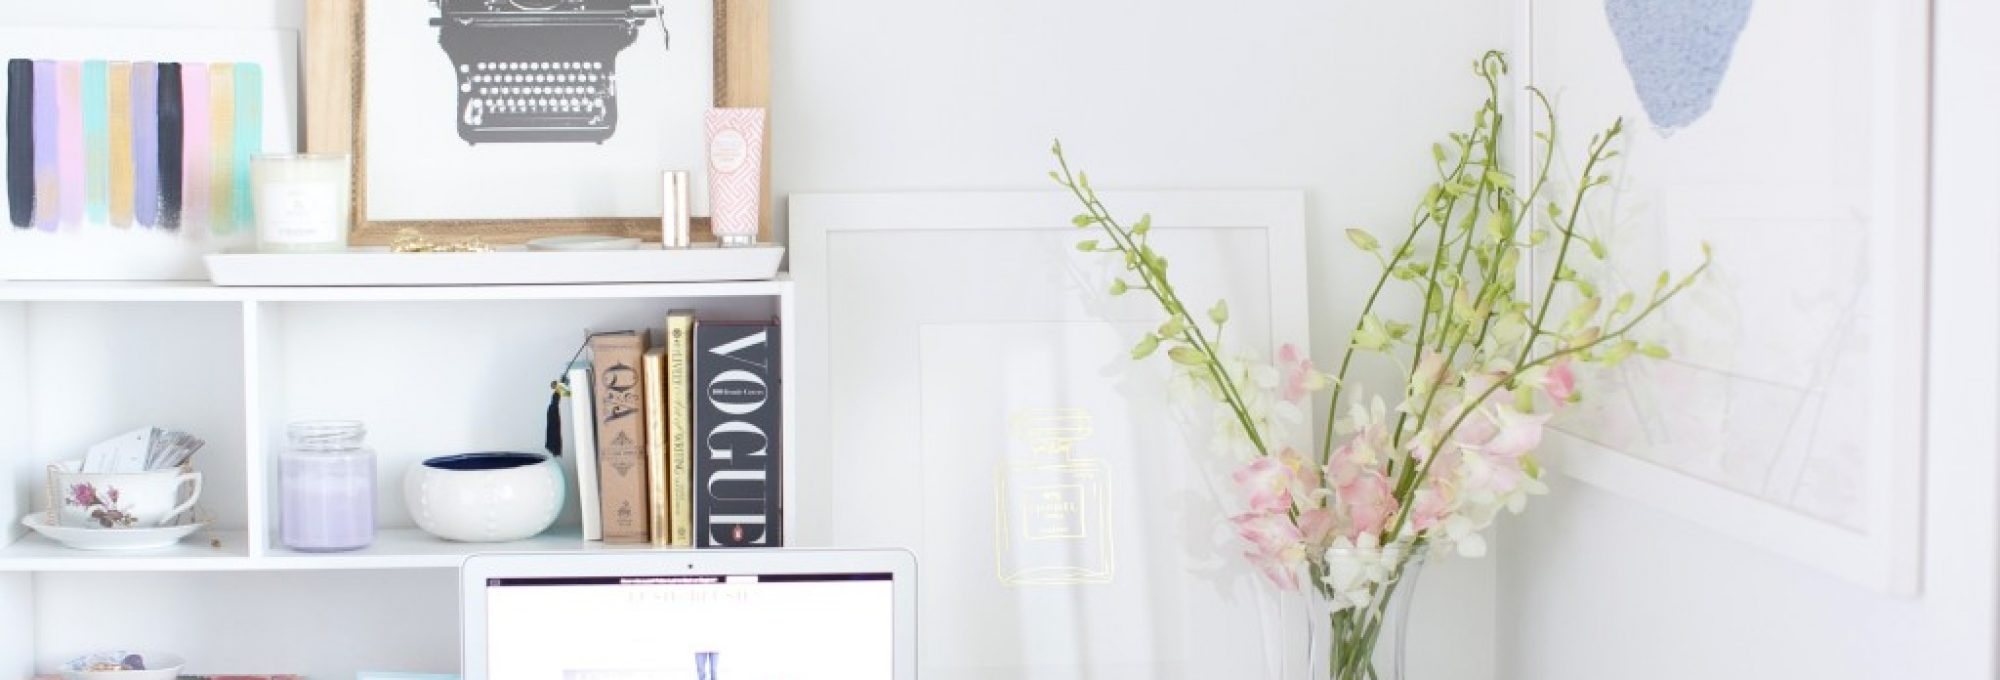 home office essentials, blog talk, blogging, desk styling tips